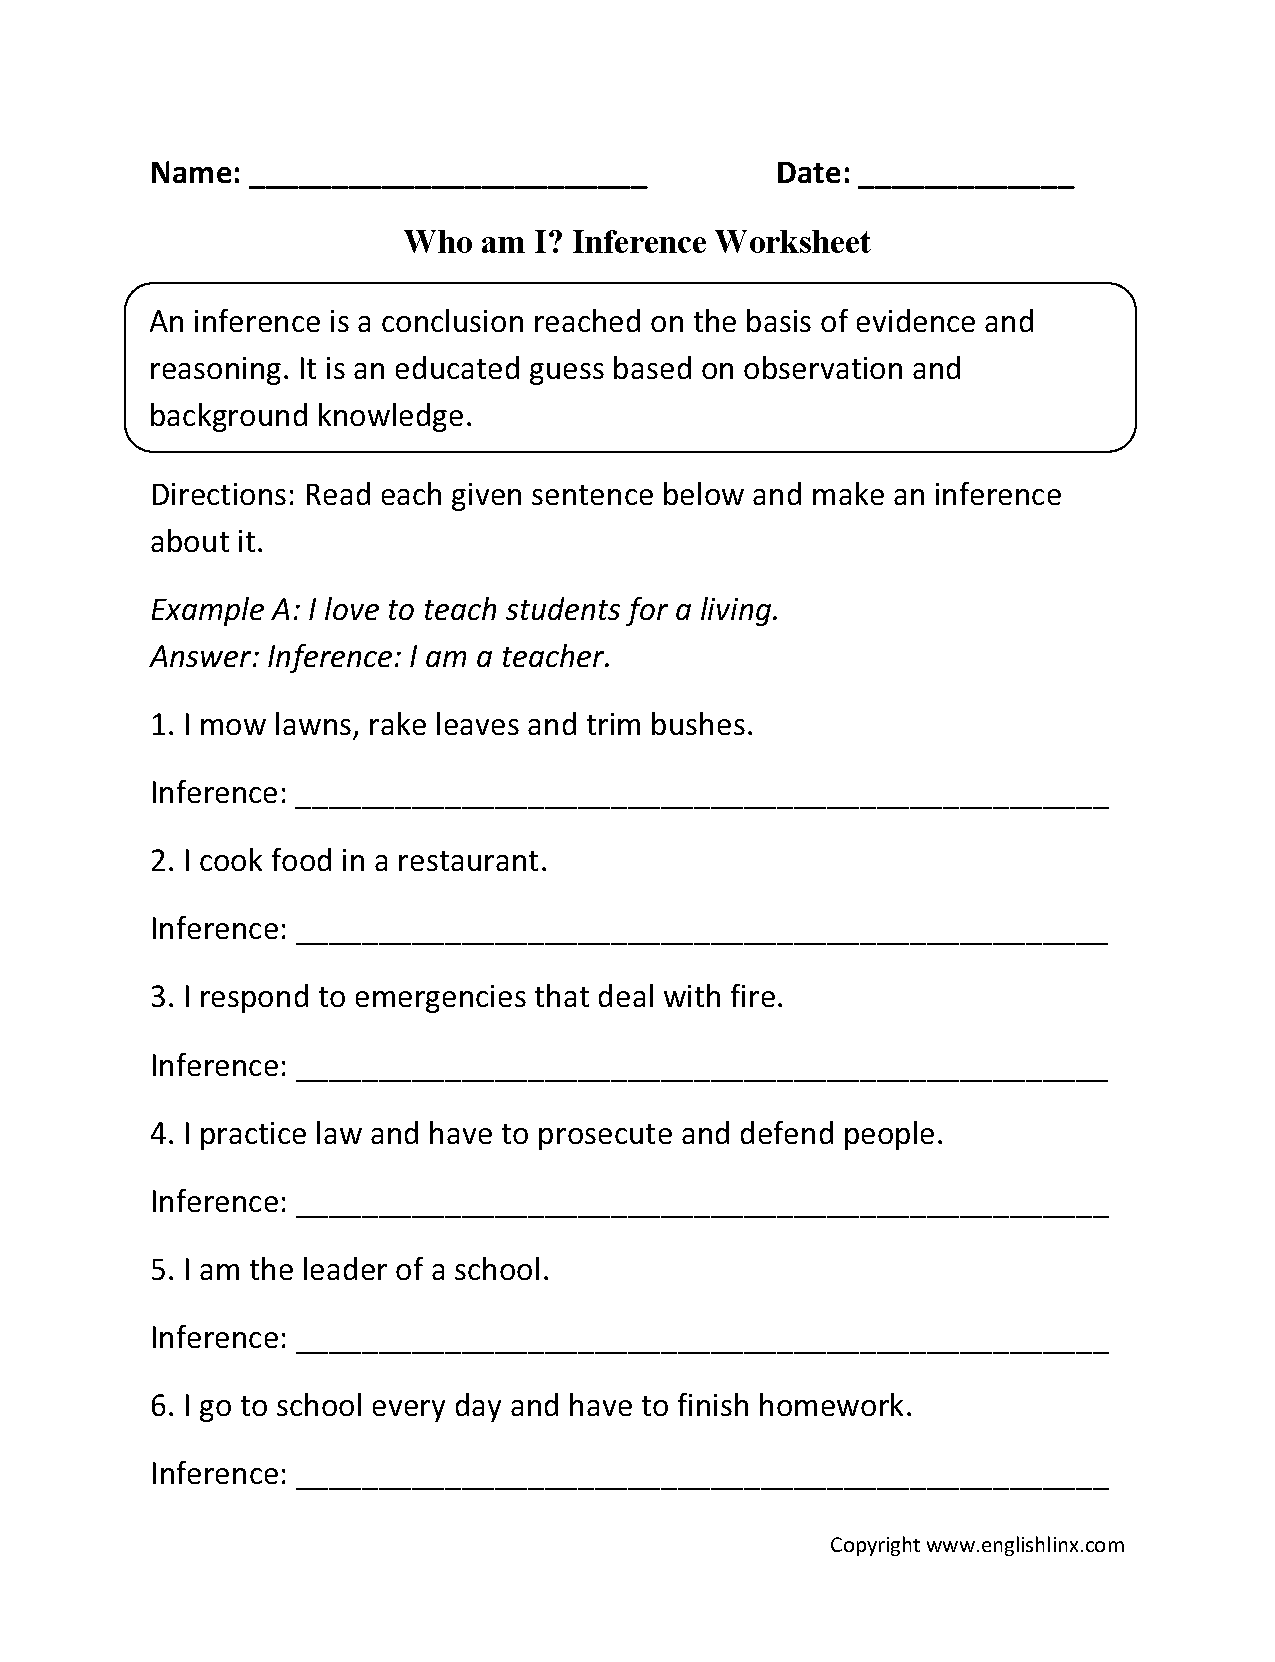 Inference Worksheets Who Am I Inference Worksheets